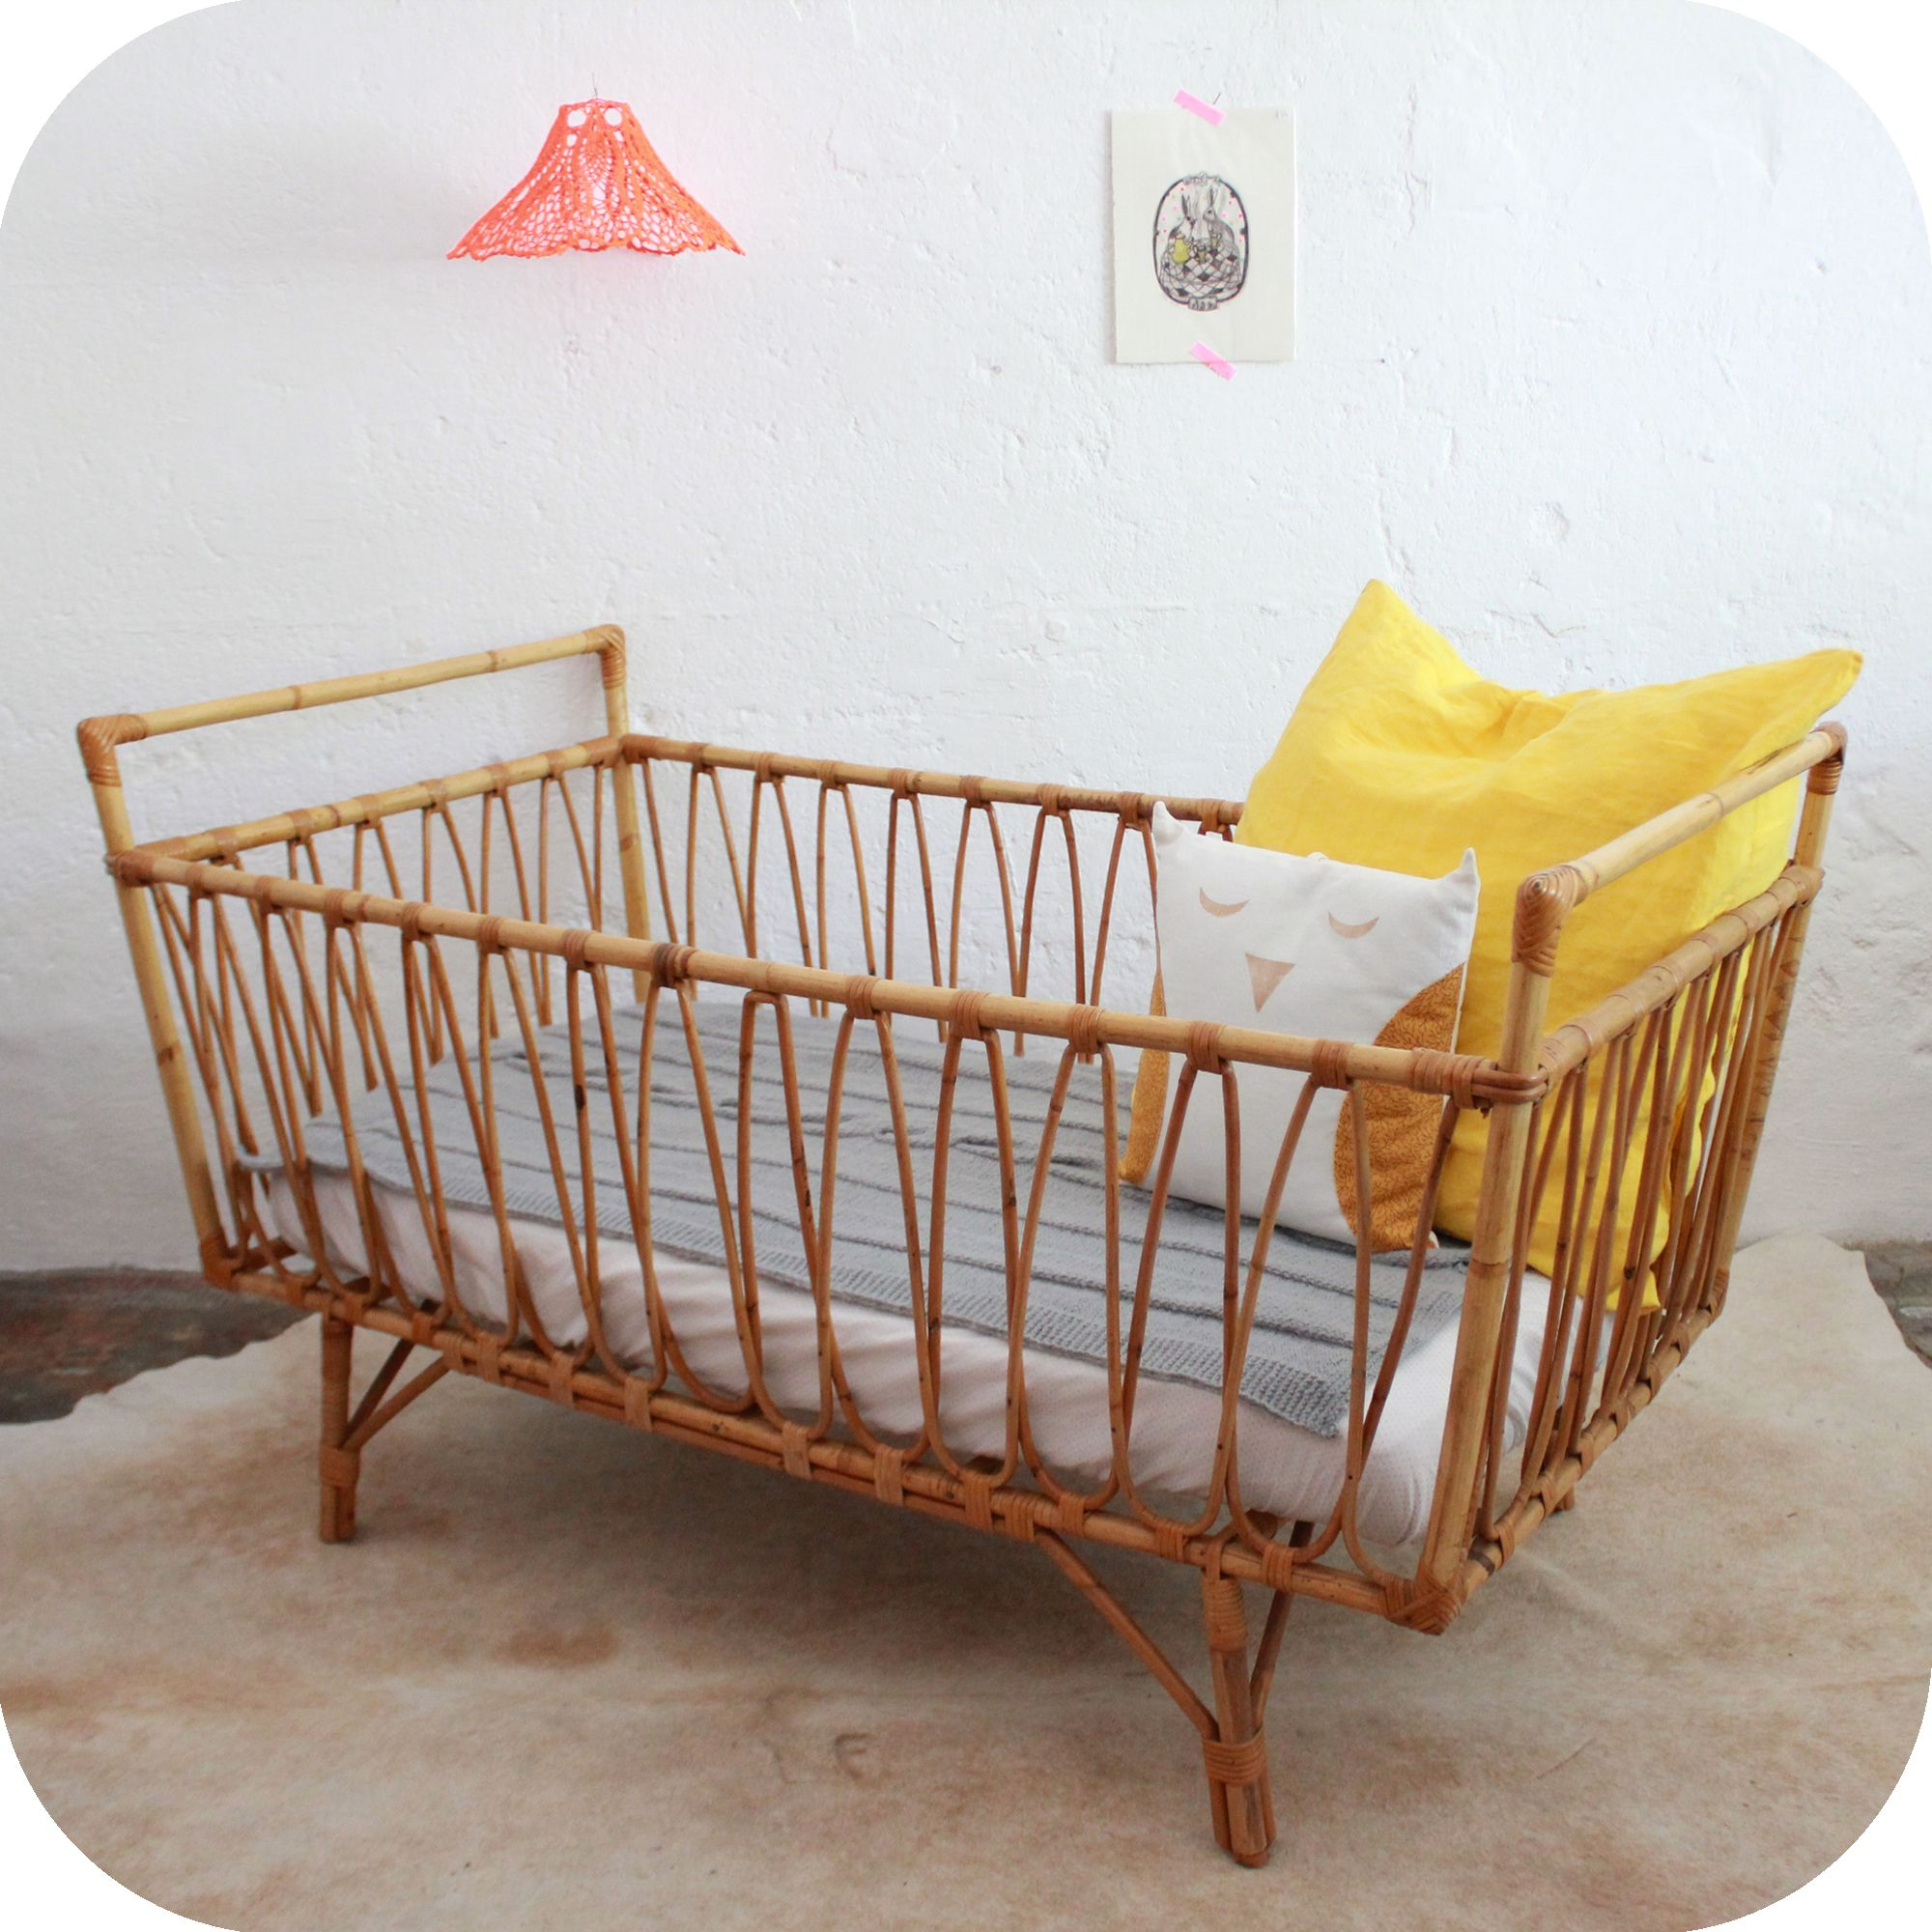 Victorian baby crib for sale - Vintage Rattan Baby Crib So Cute